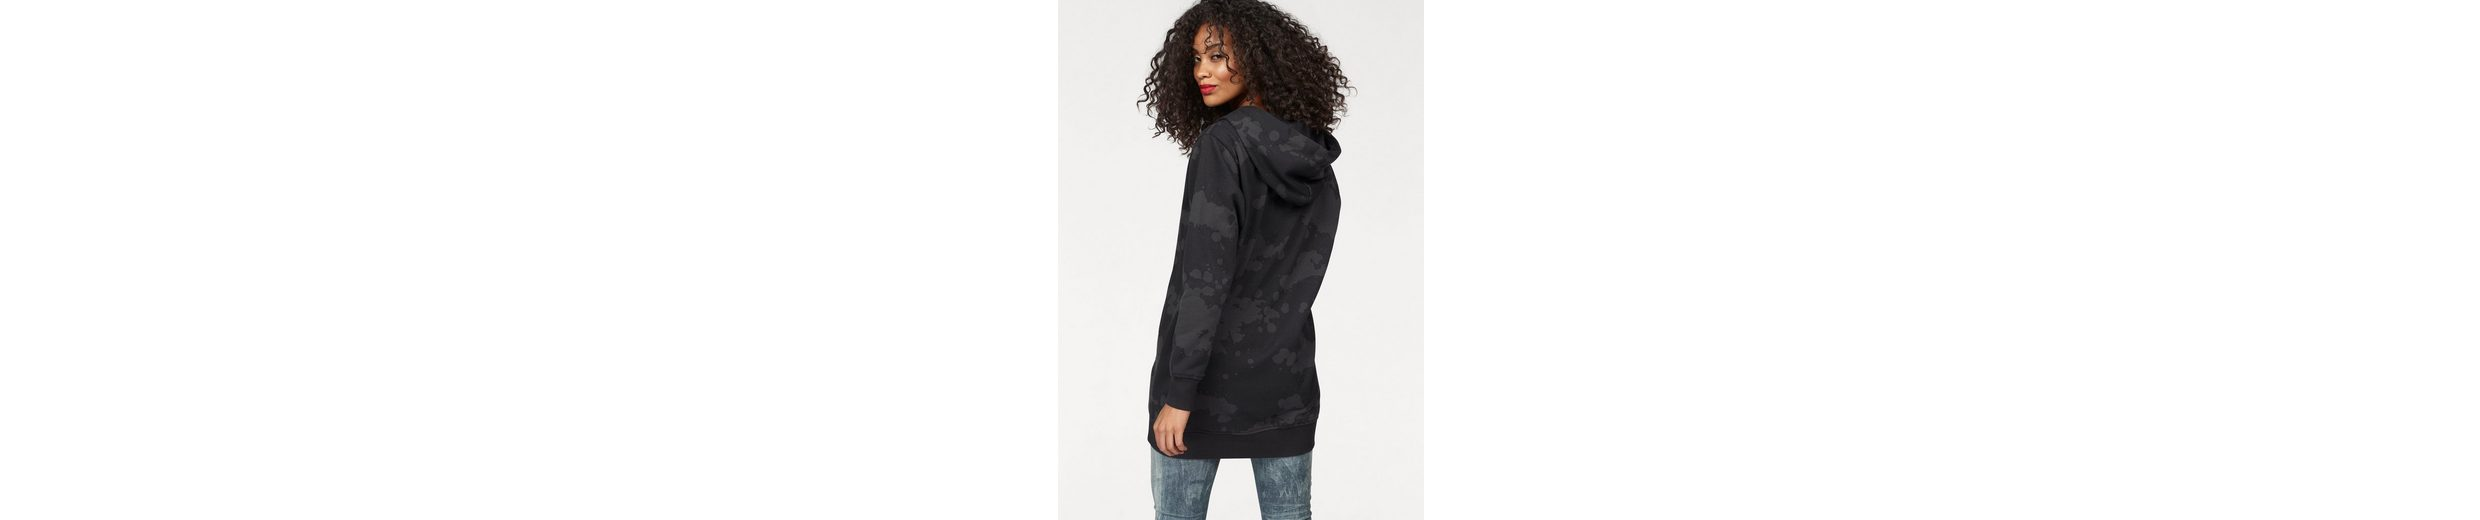 G-Star RAW Kapuzensweatshirt Reffit, mit Alloverdruck